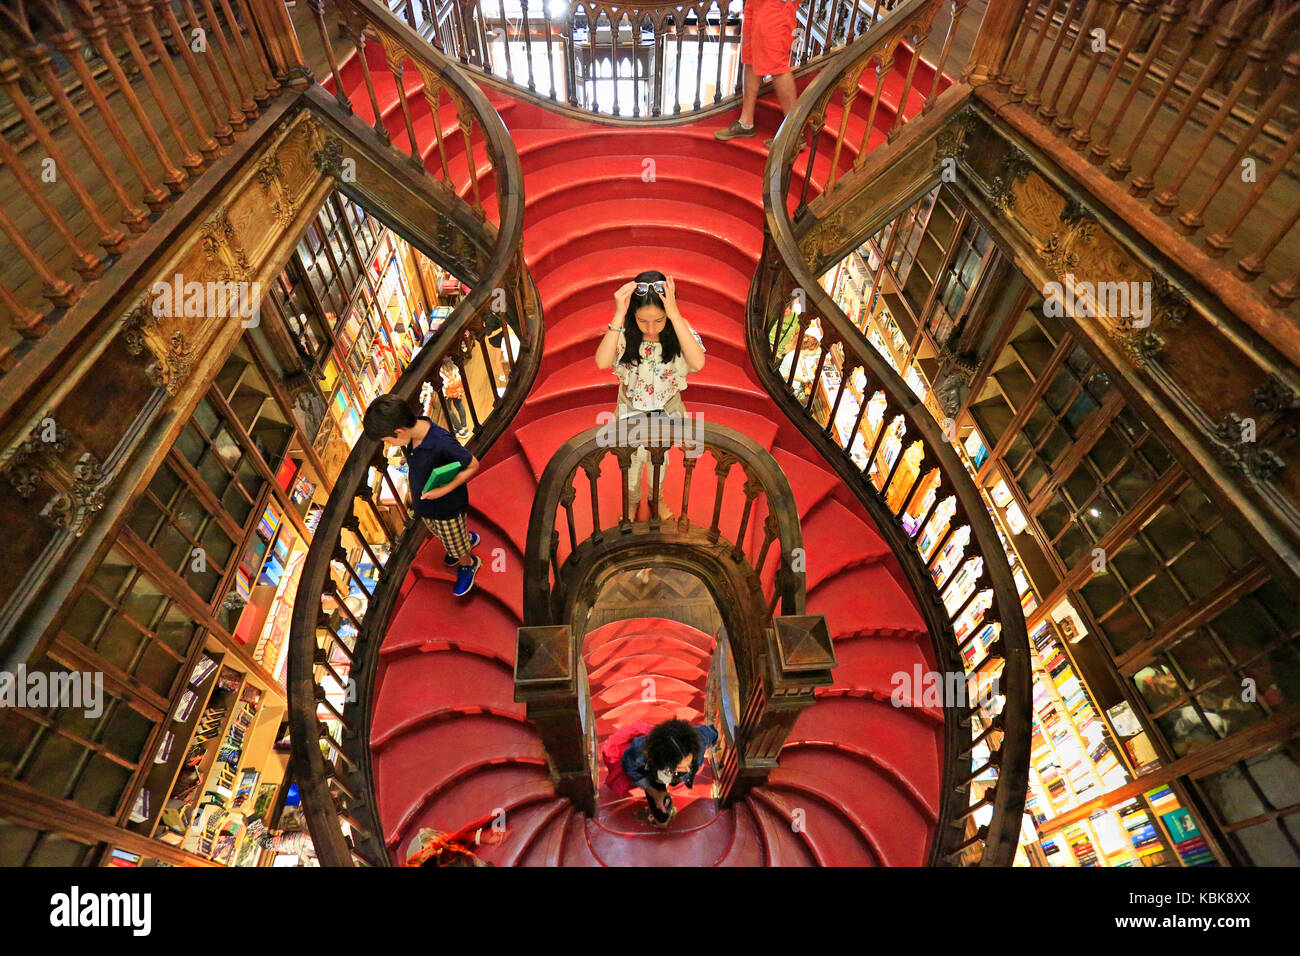 PORTO, PORTUGAL - JULY 07, 2017: High angle view of stairs inside the famous bookshop Lello e Irmao, considered - Stock Image